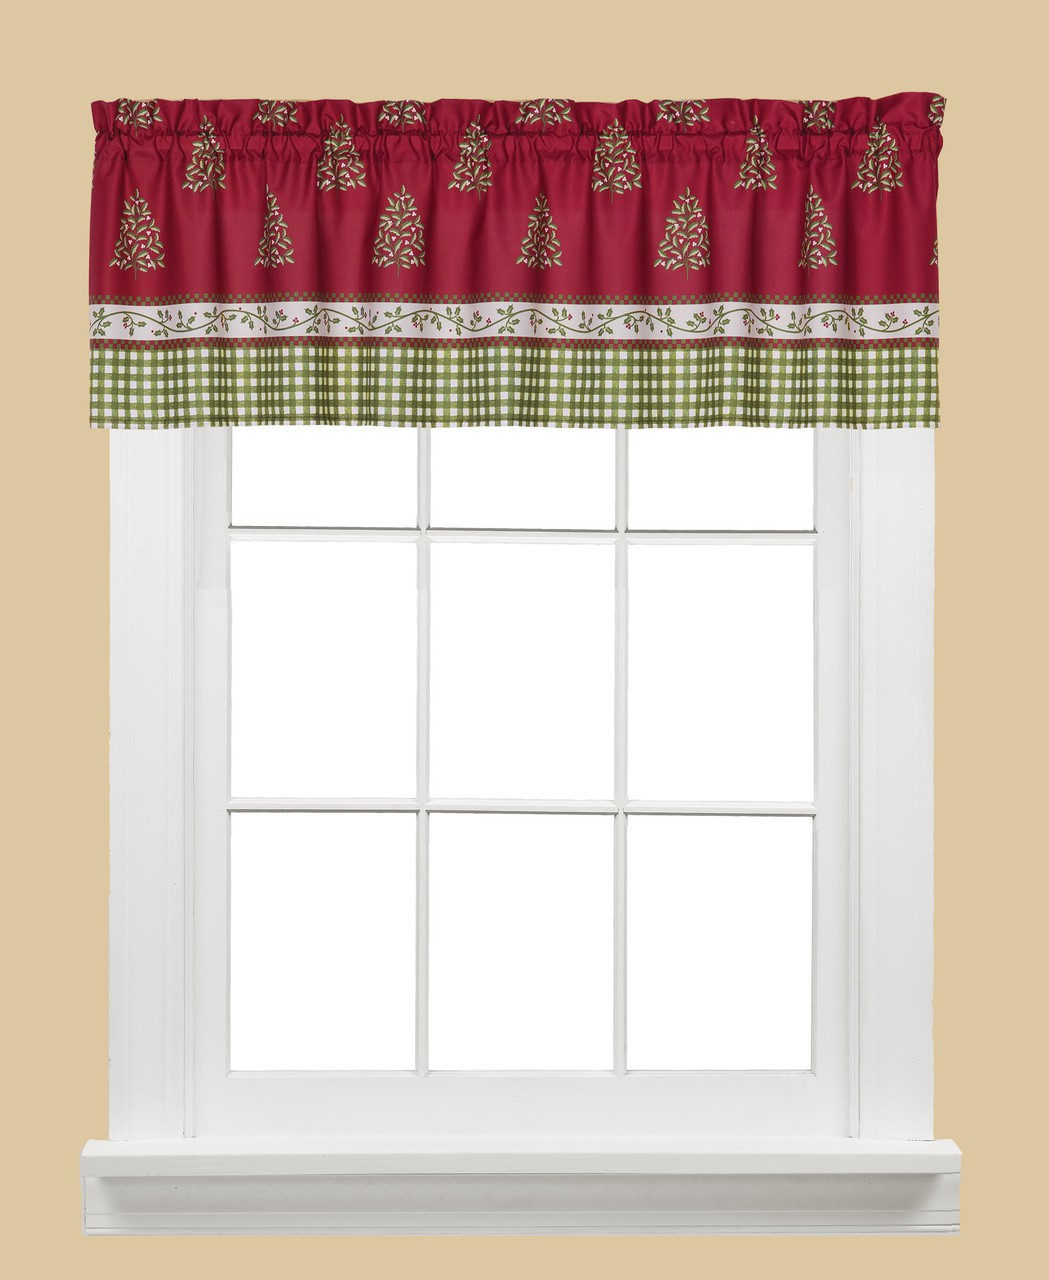 Hometown Holiday Christmas Kitchen Curtain Valance